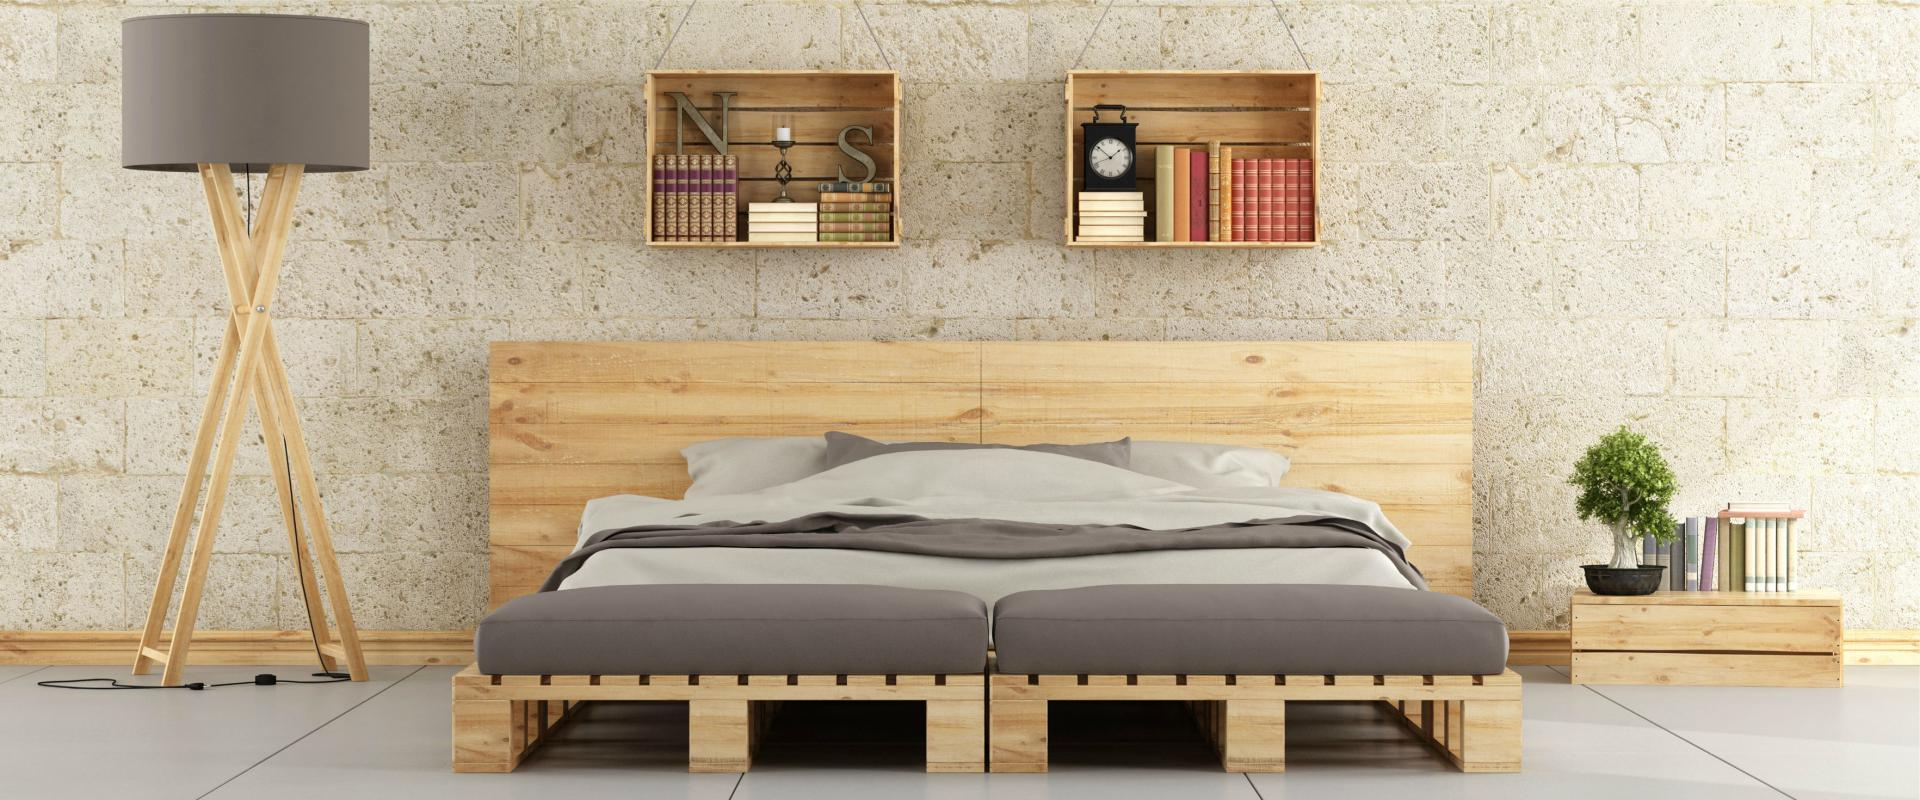 Slide_Pallet_Furniture